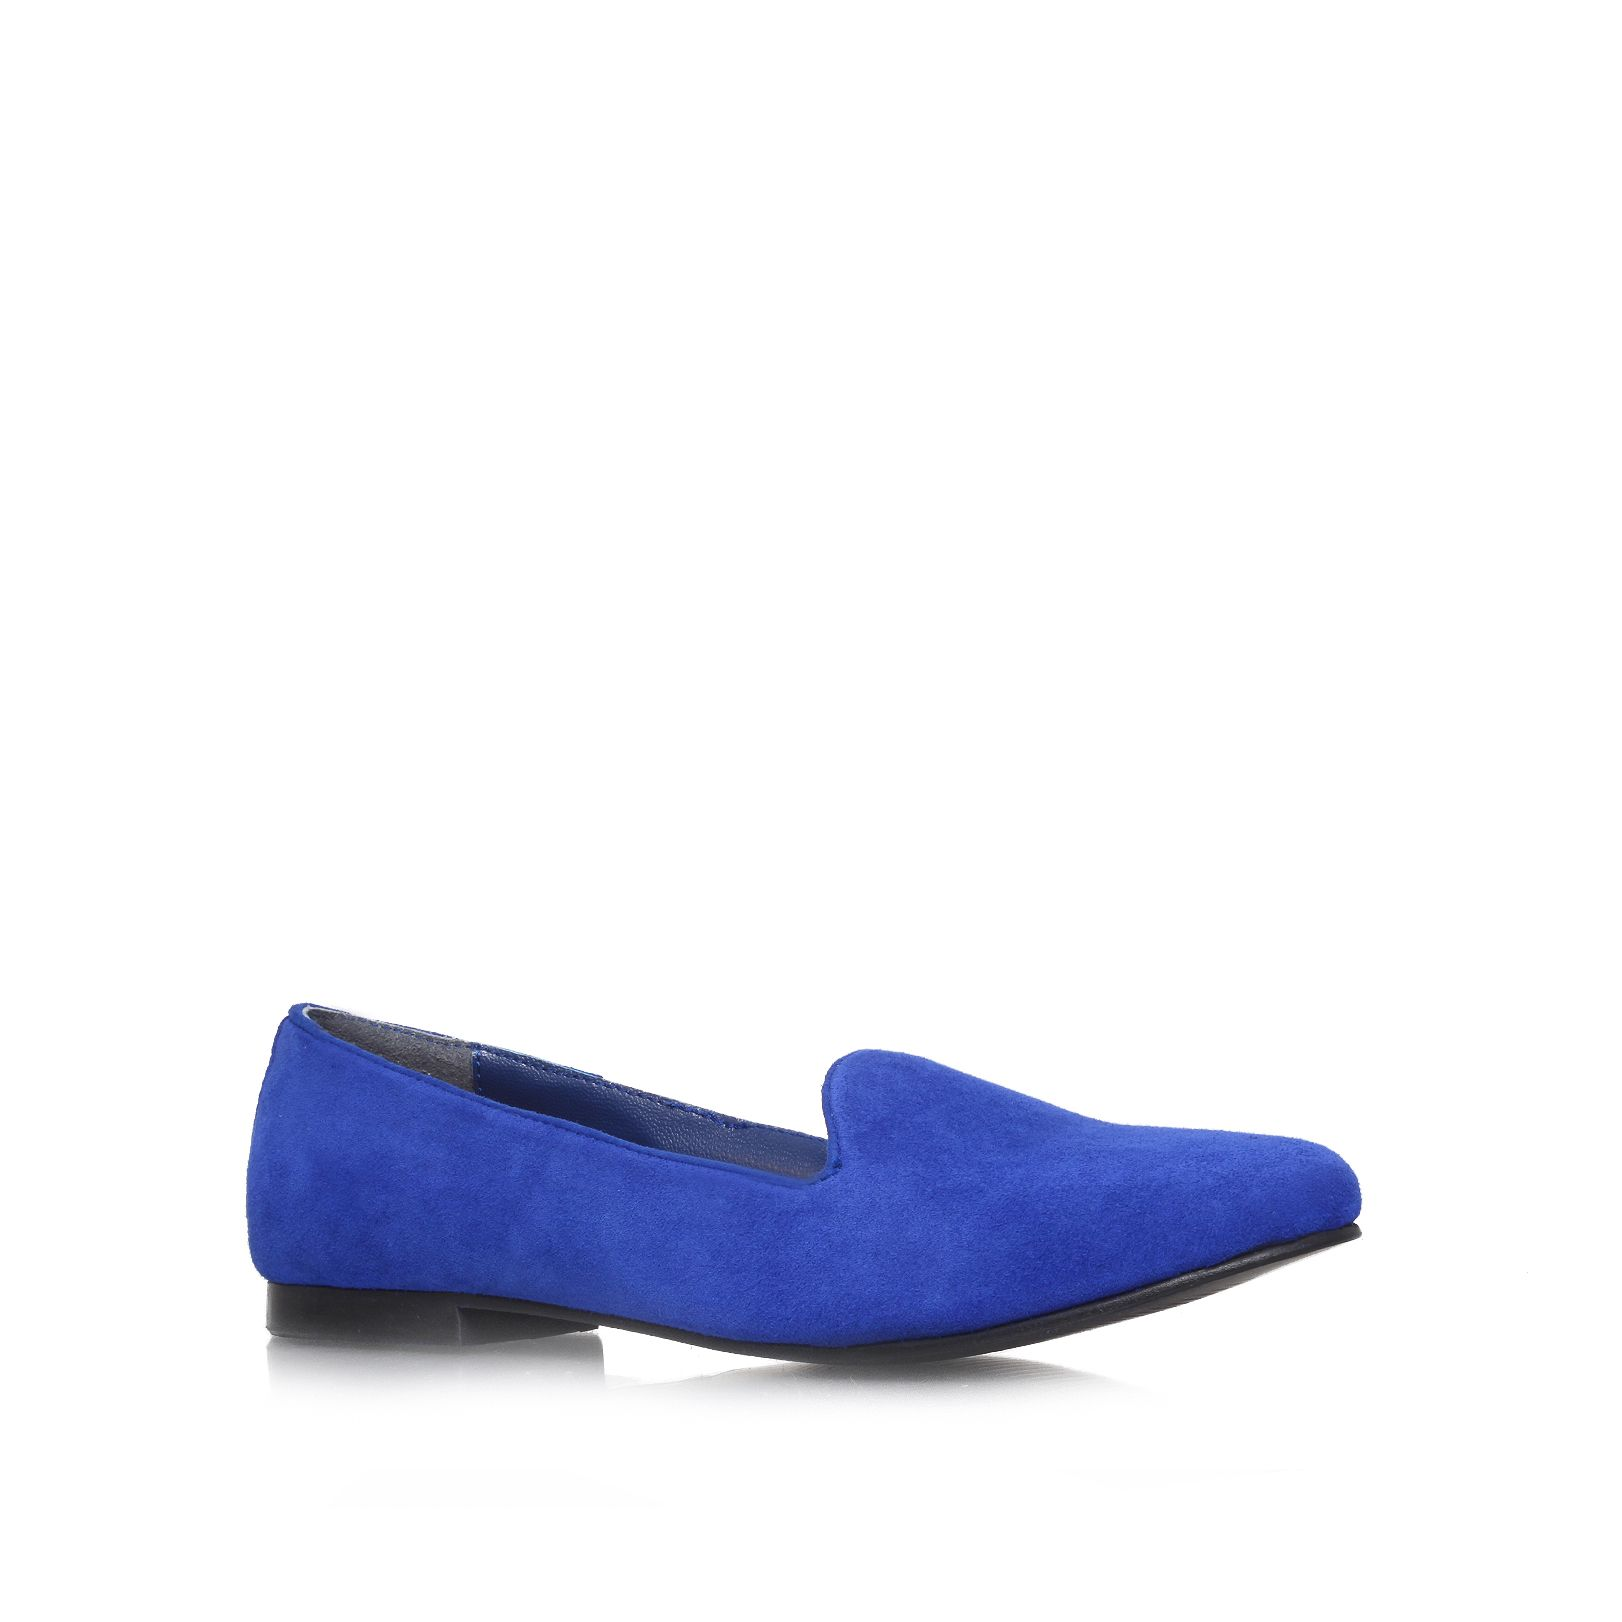 Nieve suede flat slipper shoes